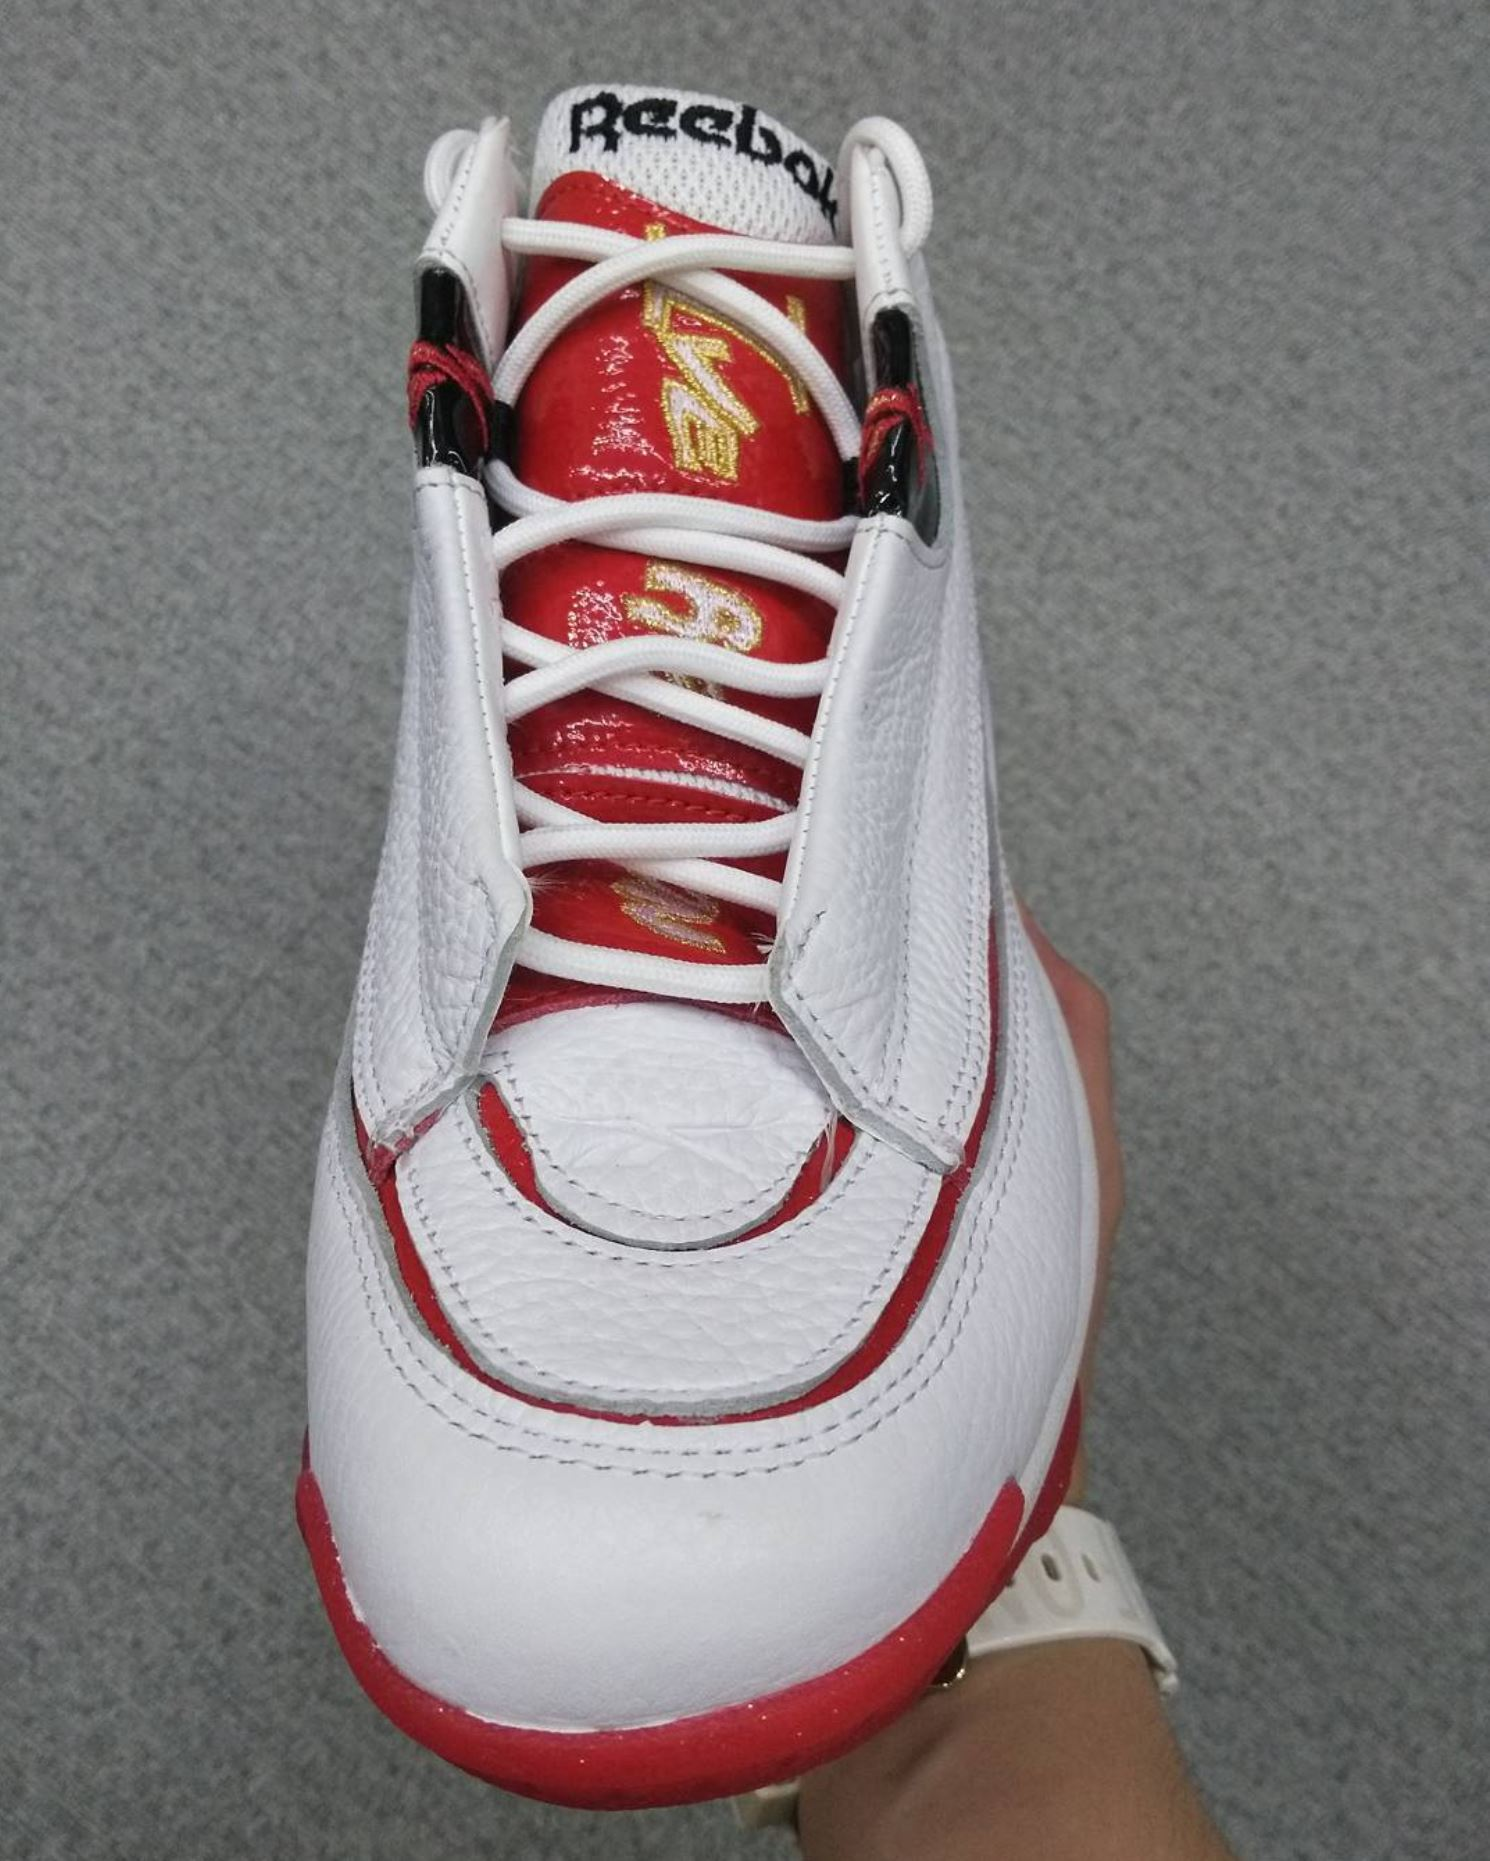 45d4865ac50 reebok answer 1 white red retro - WearTesters